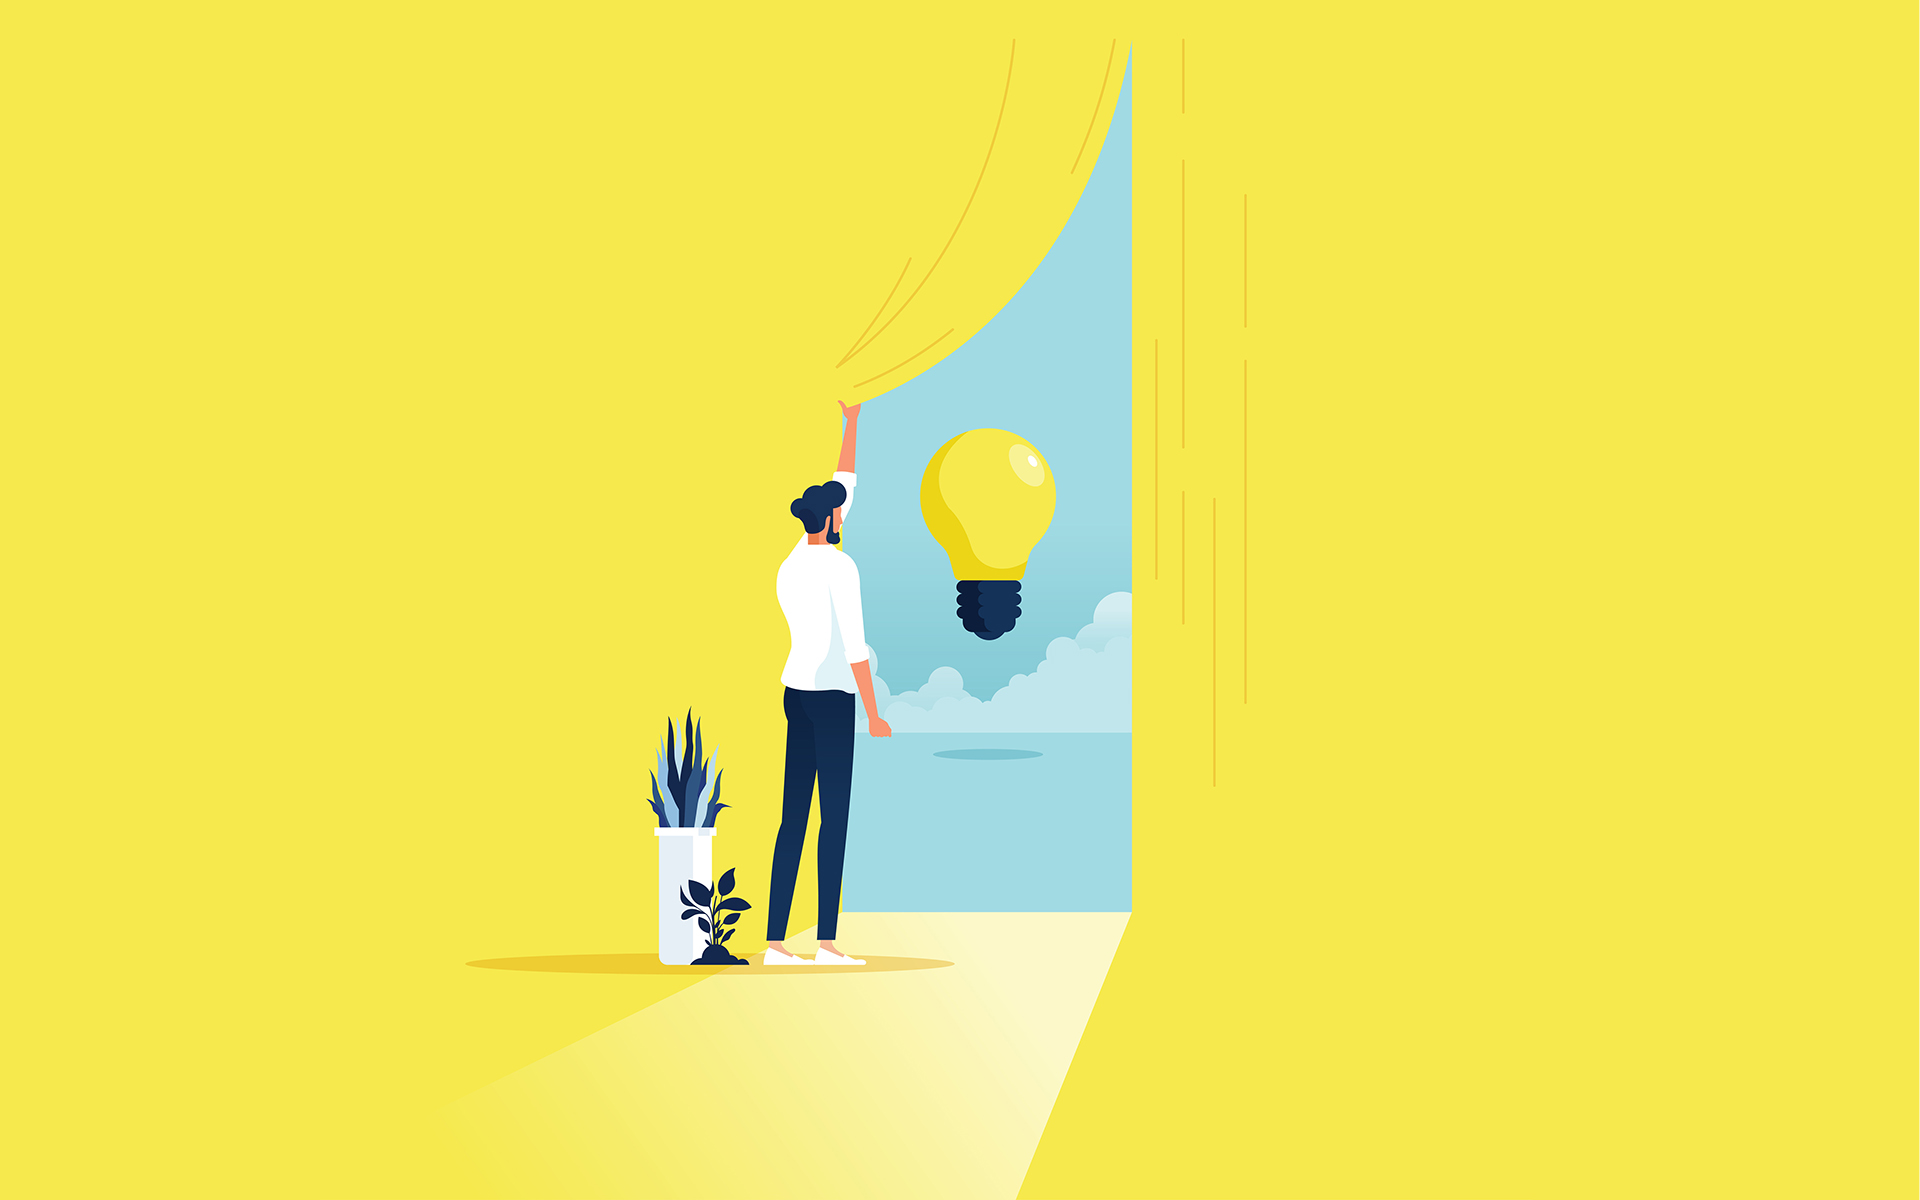 Business creativity and finding solution vector concept with businessman opening Curtain trying to get some new ideas, innovations, inventions